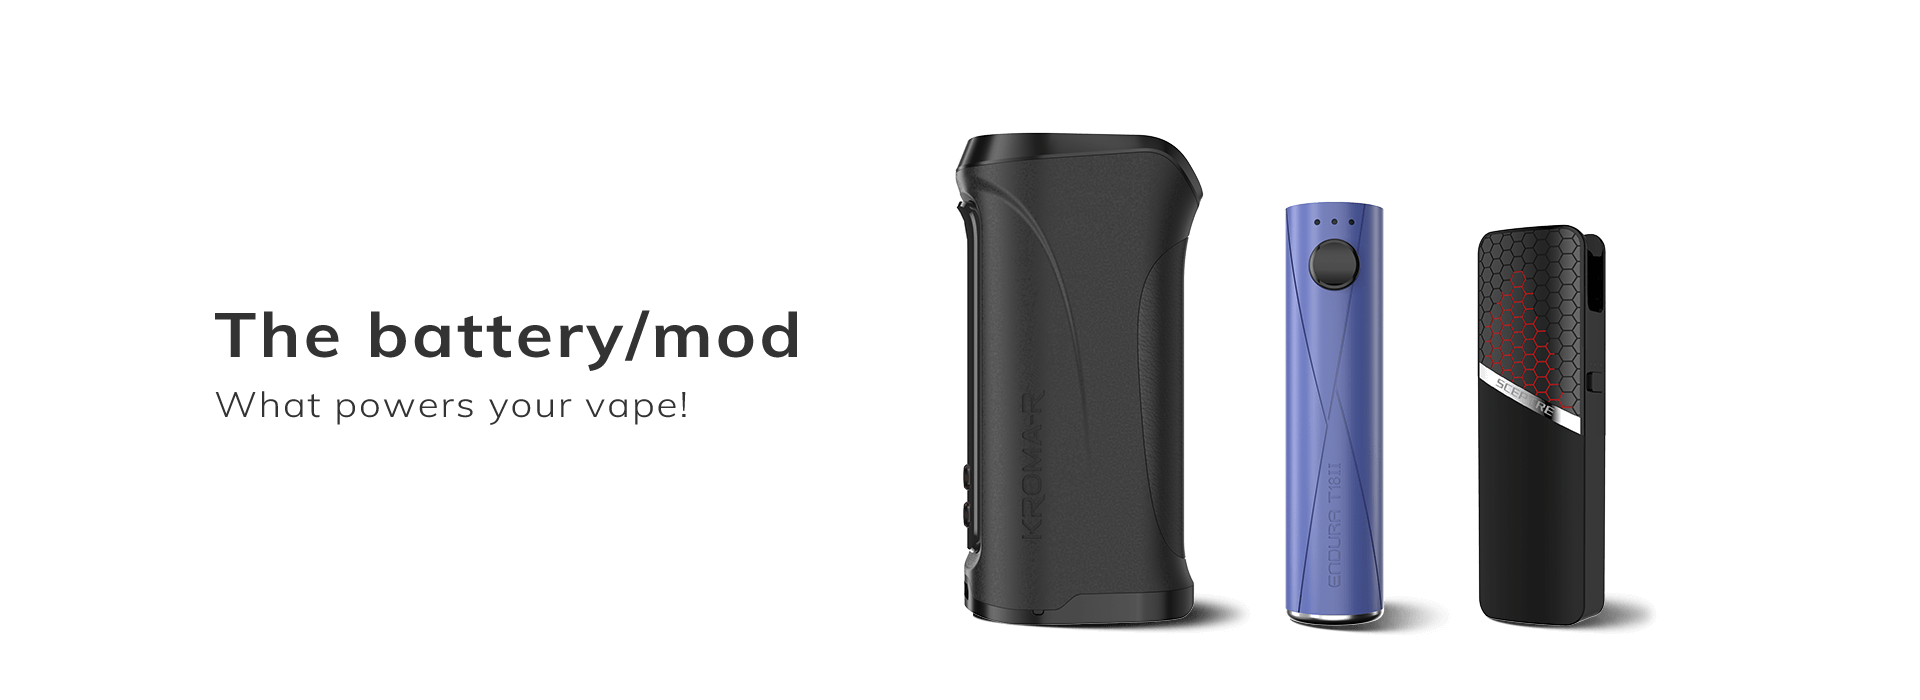 The Battery/Mod - What powers your vape